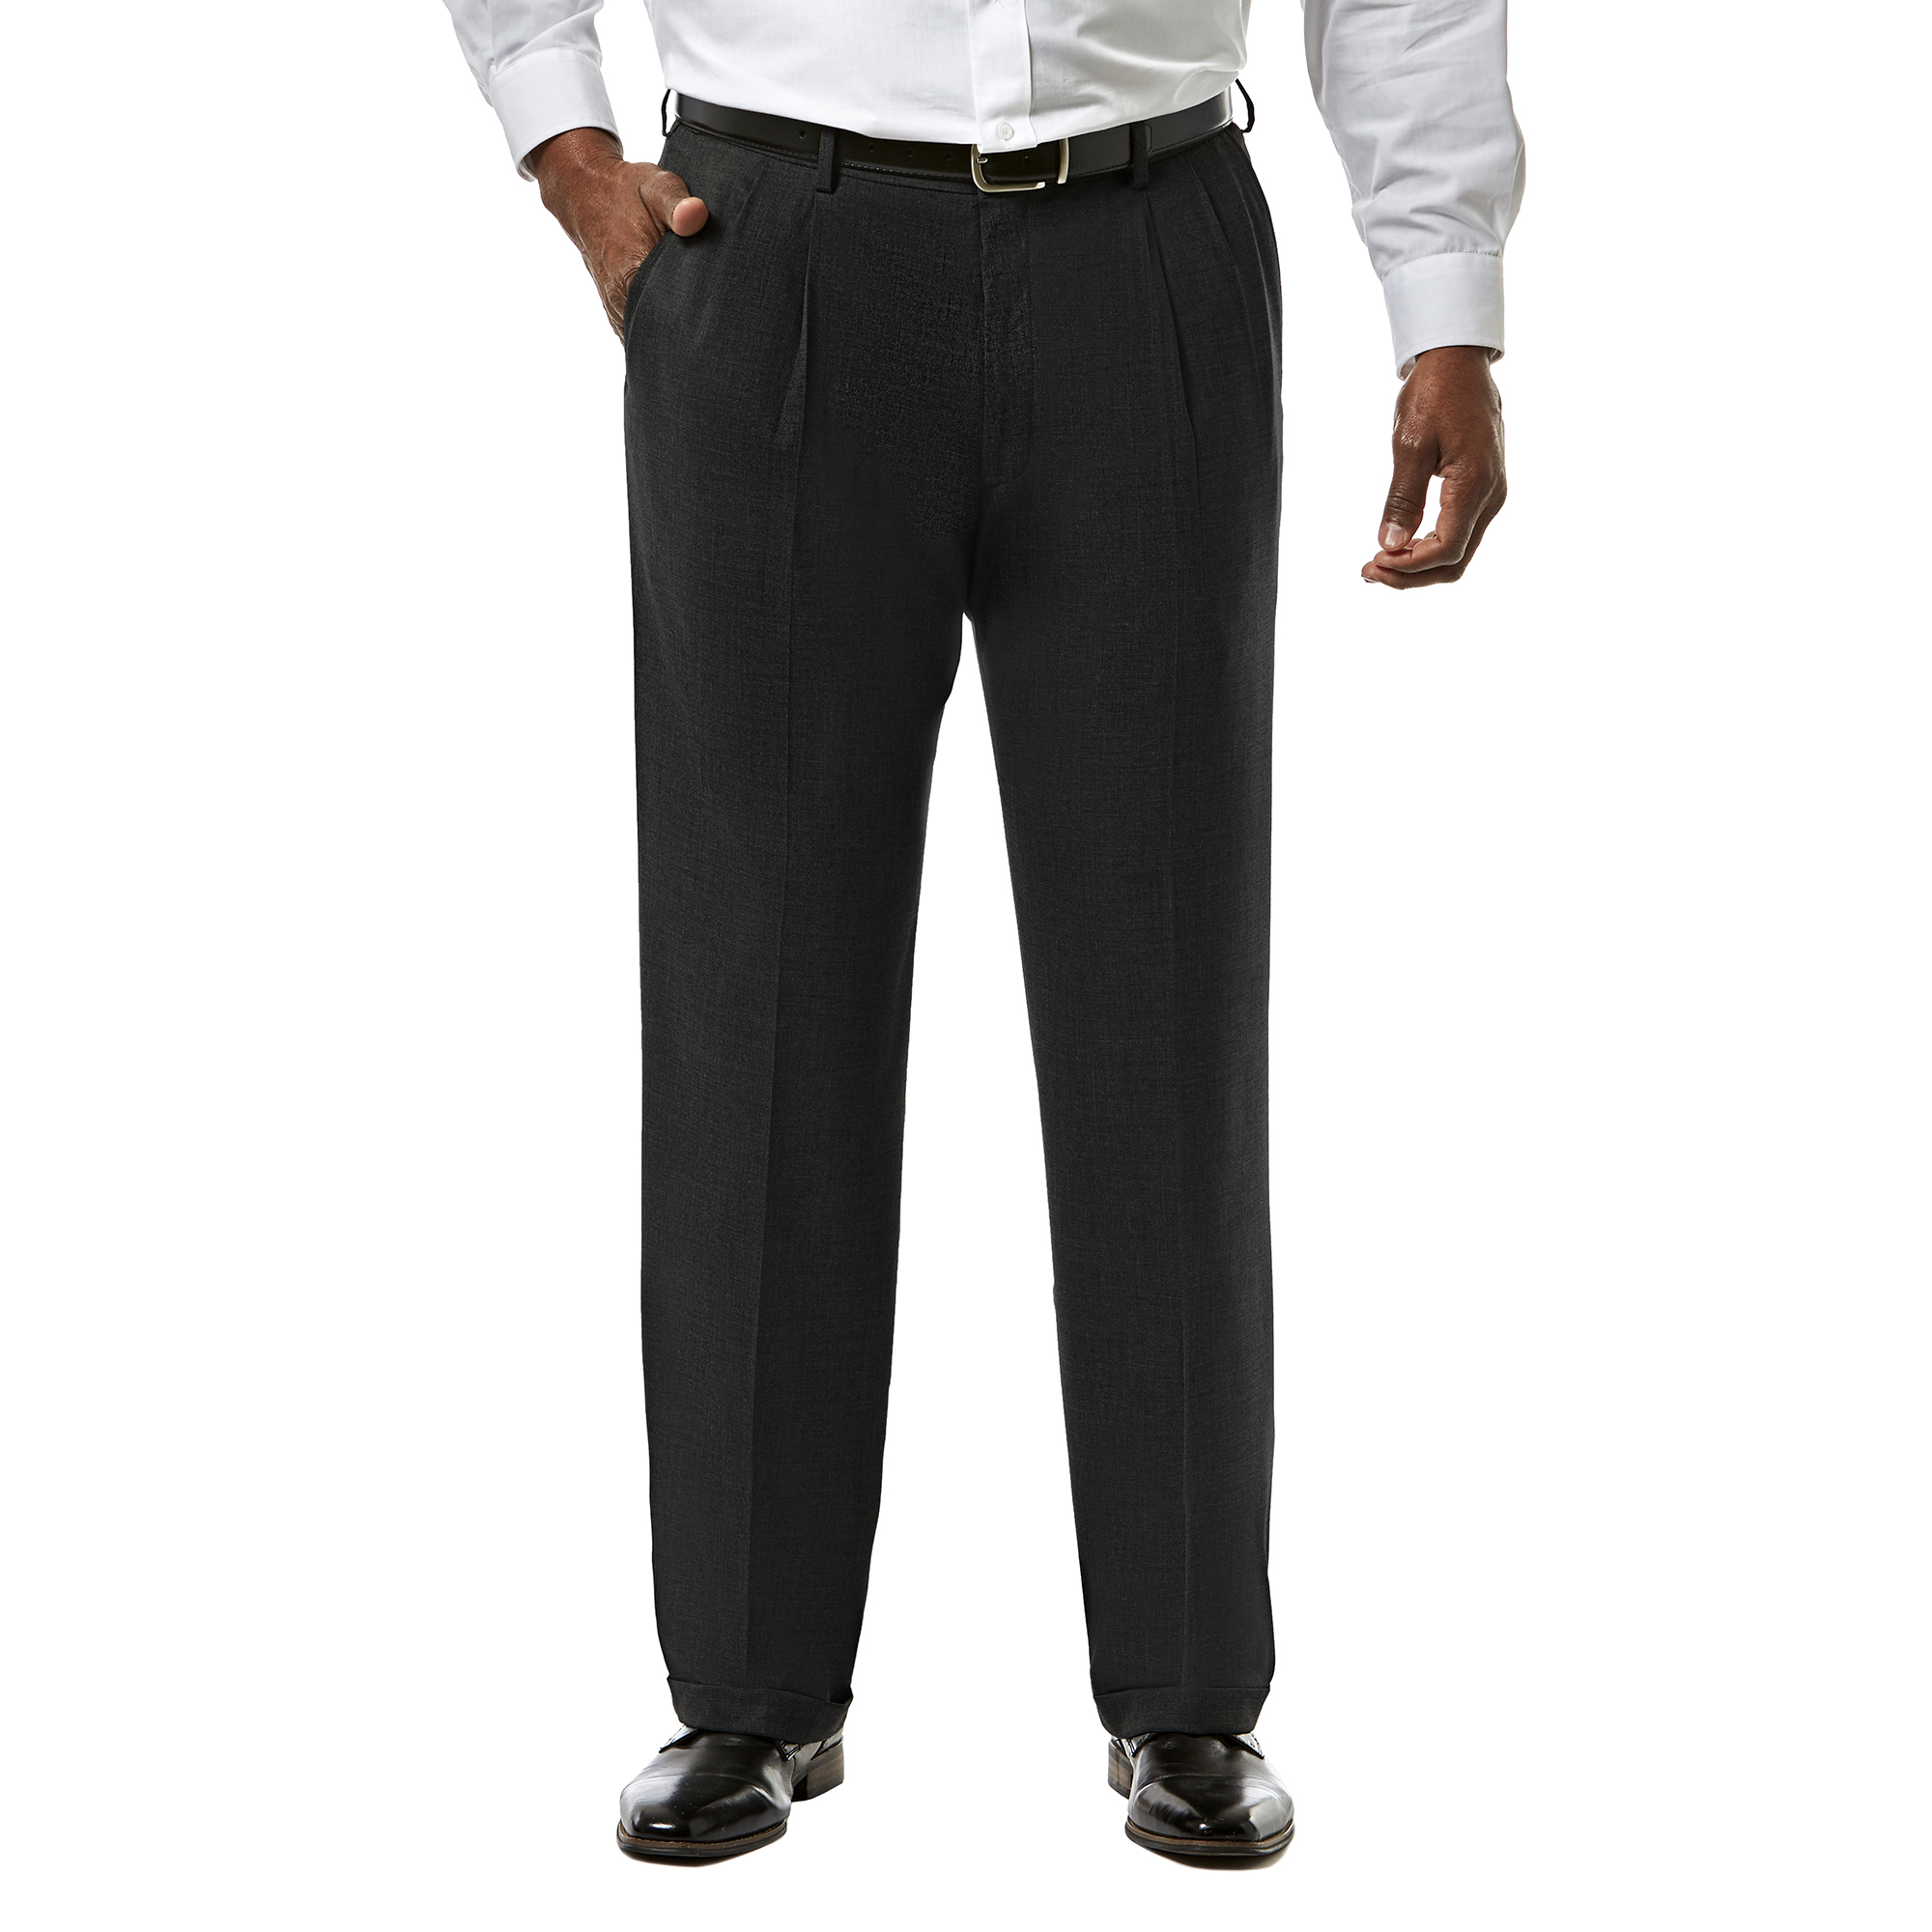 Haggar Mens Tall J.m Premium Stretch Classic Fit Pleat Front Pant Haggar Men/'s Tailored HY91182